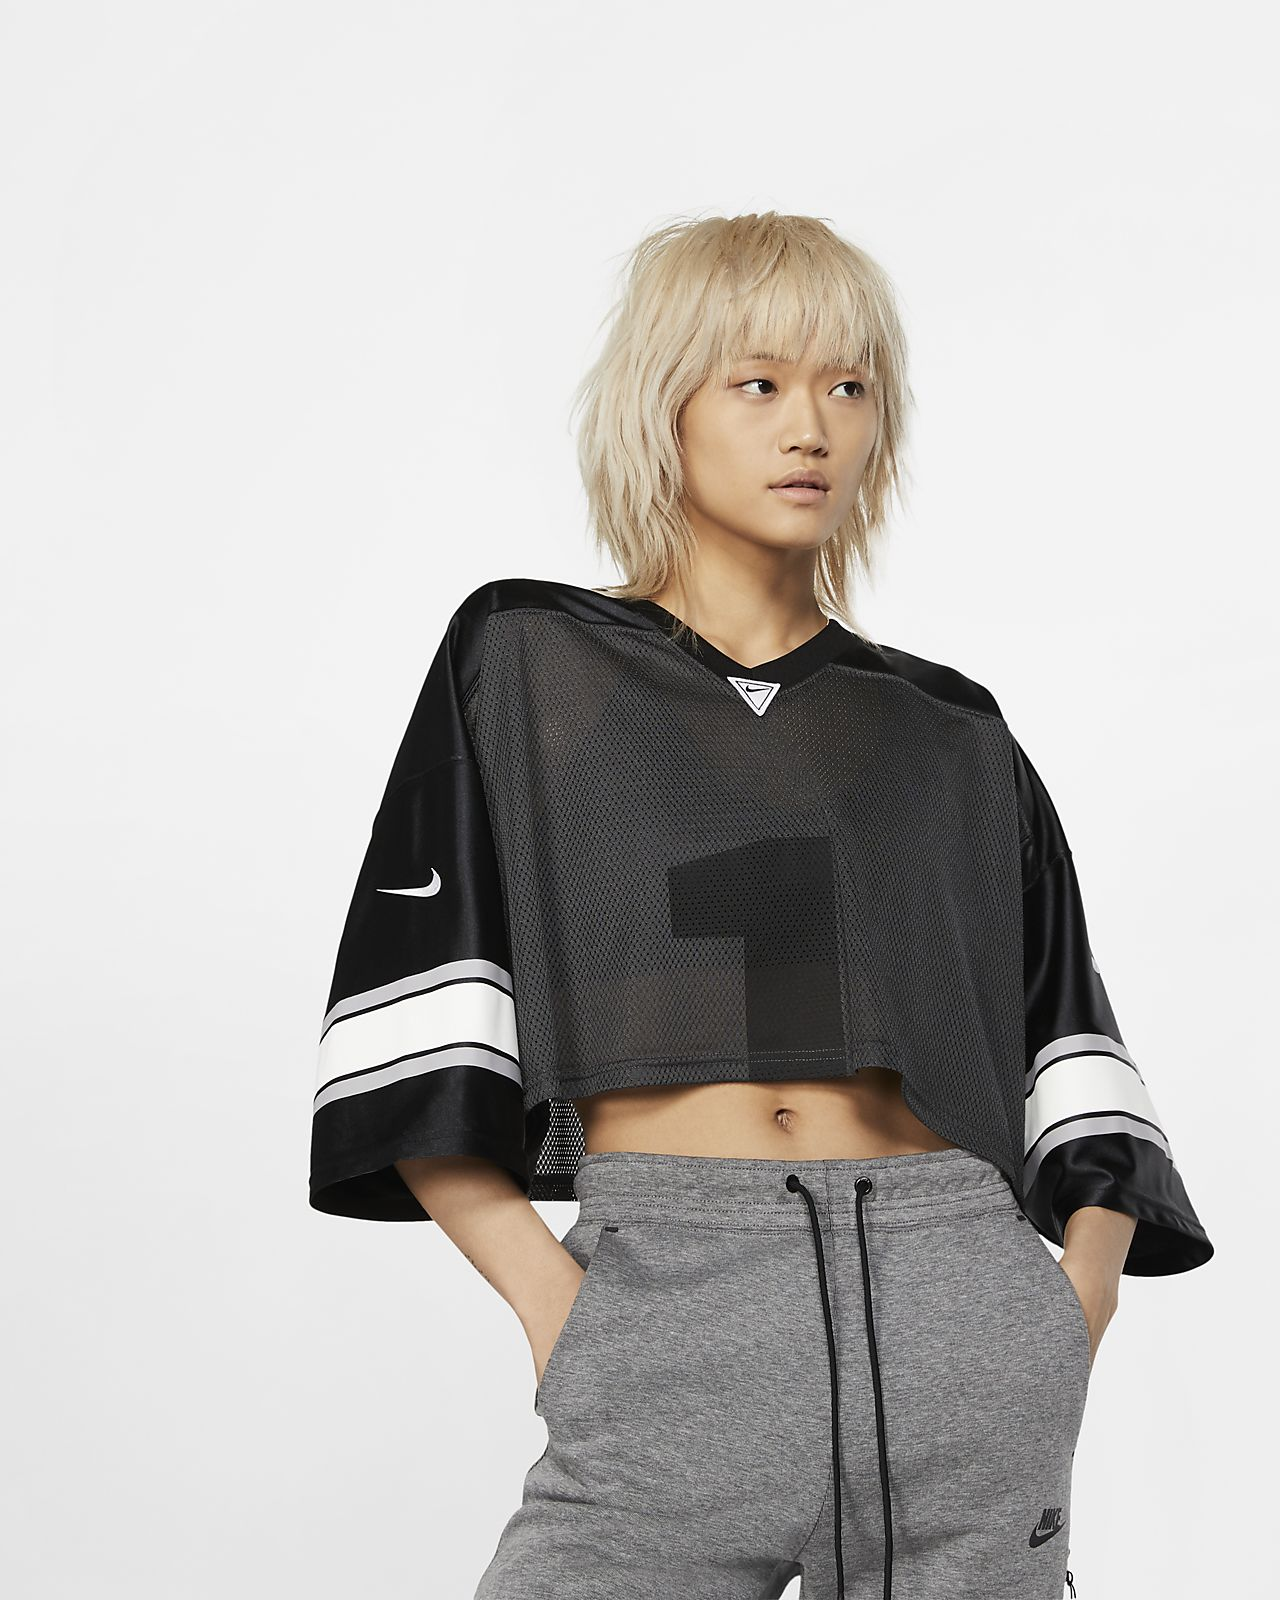 Haut de football NikeLab Collection pour Femme